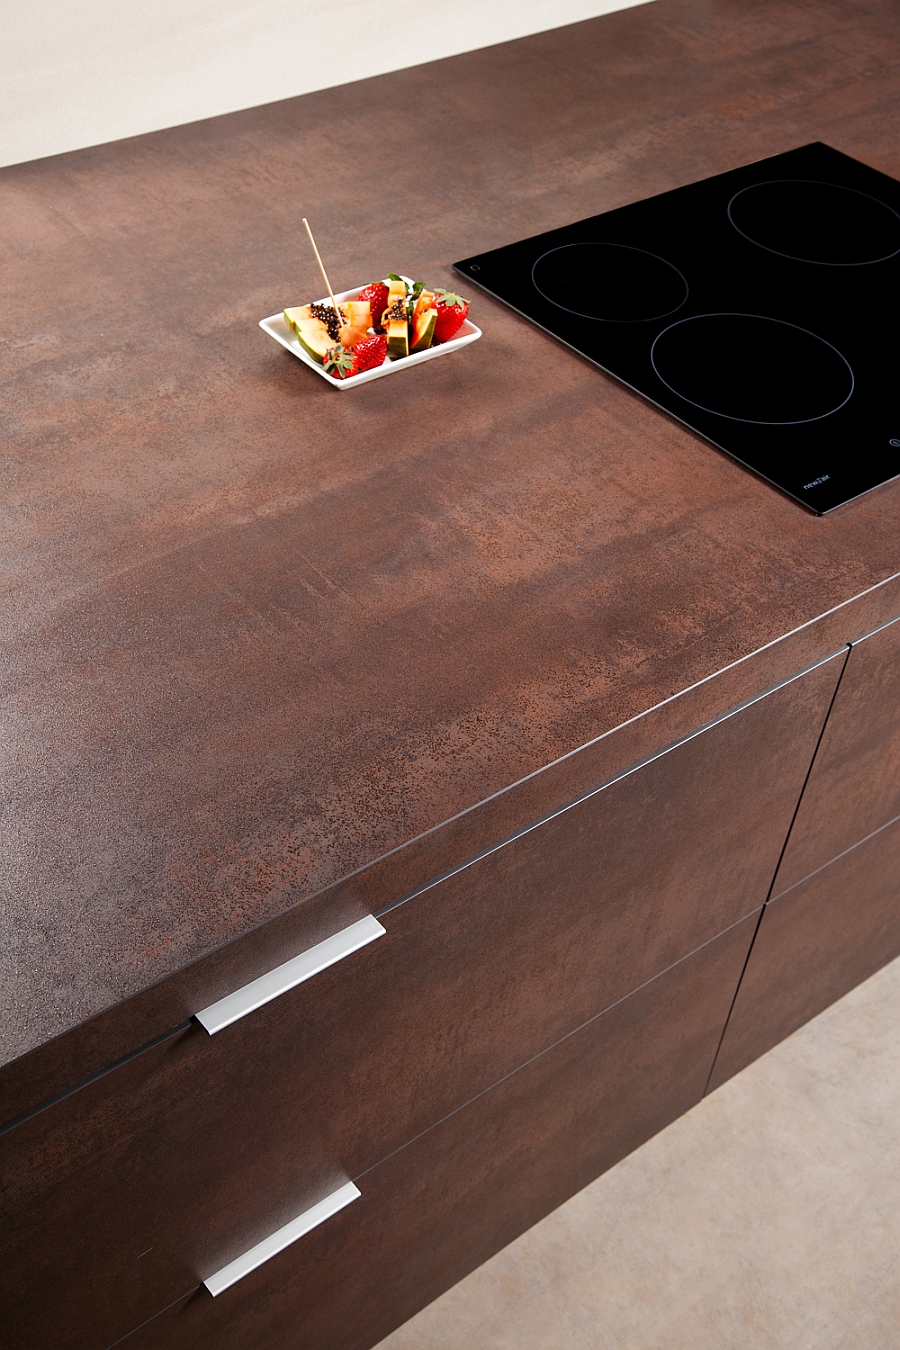 Kitchen Islands Images Resilient Porcelain Slabs For Kitchen Countertops, Islands